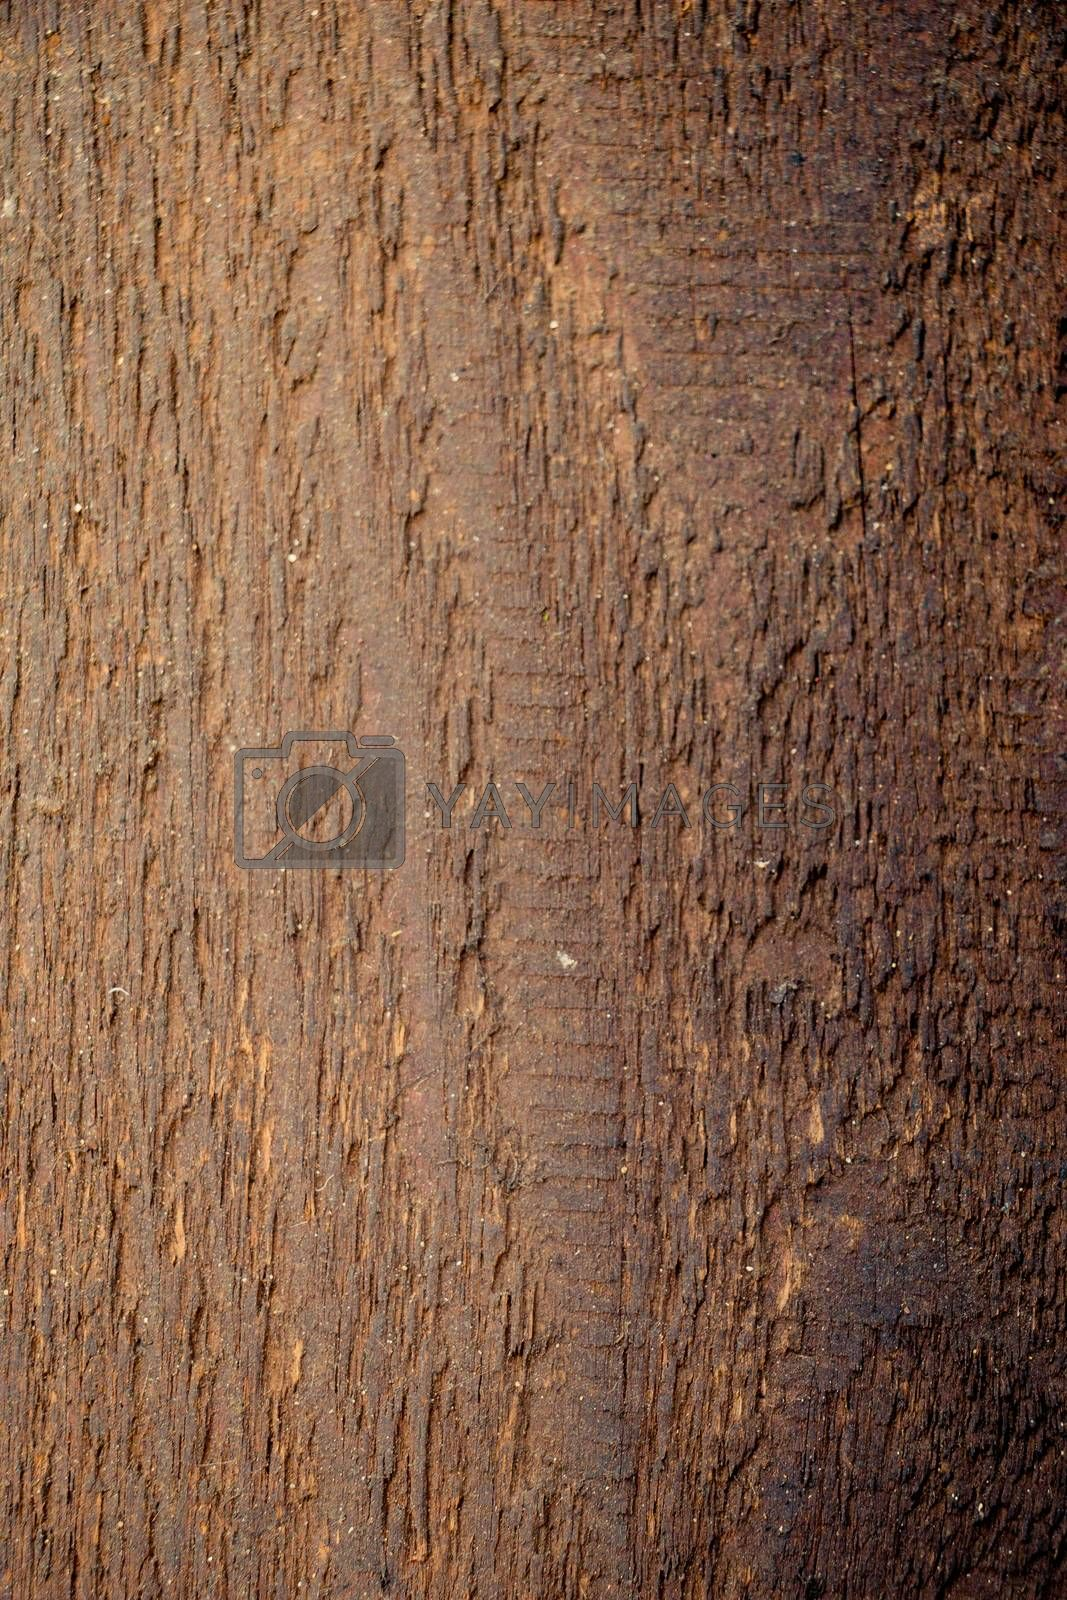 Wood texture with natural patterns by berkay